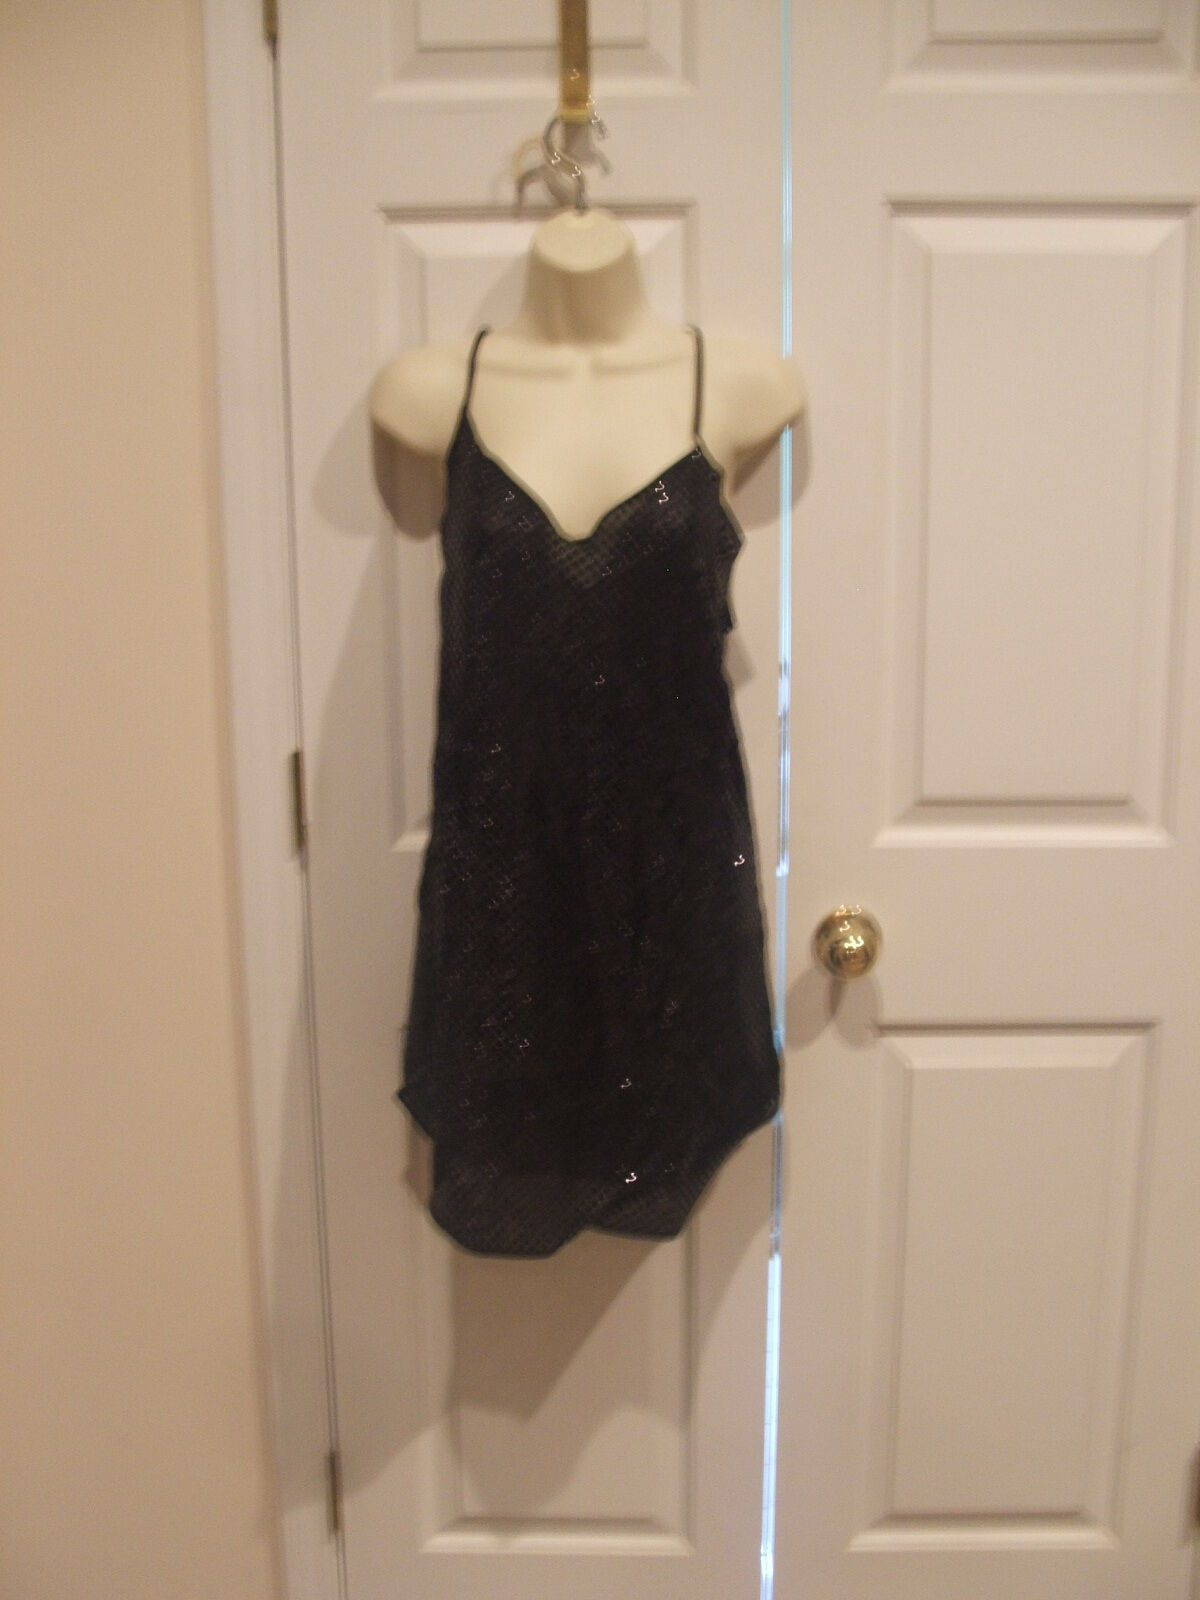 new pkg FREDERICK'S OF HOLLYWOOD  black solid  sequin cloth short gown medium - $25.98